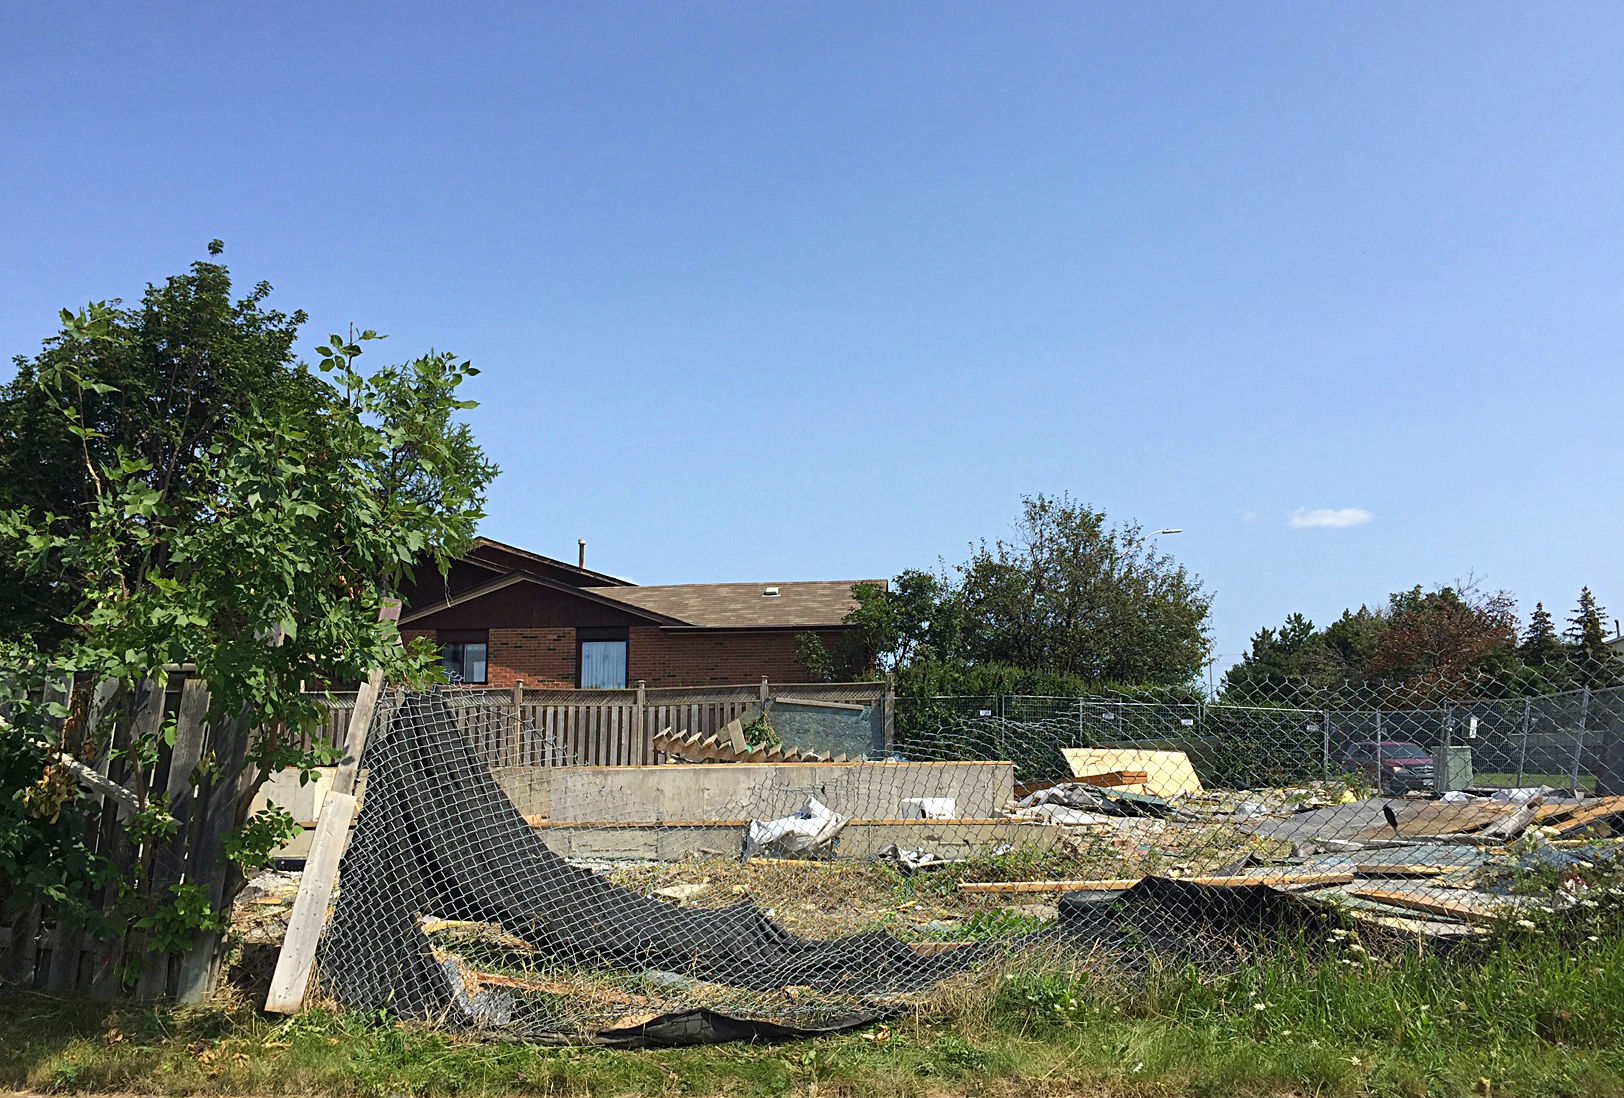 brampton's big blue house is finally gone for good | bramptonist